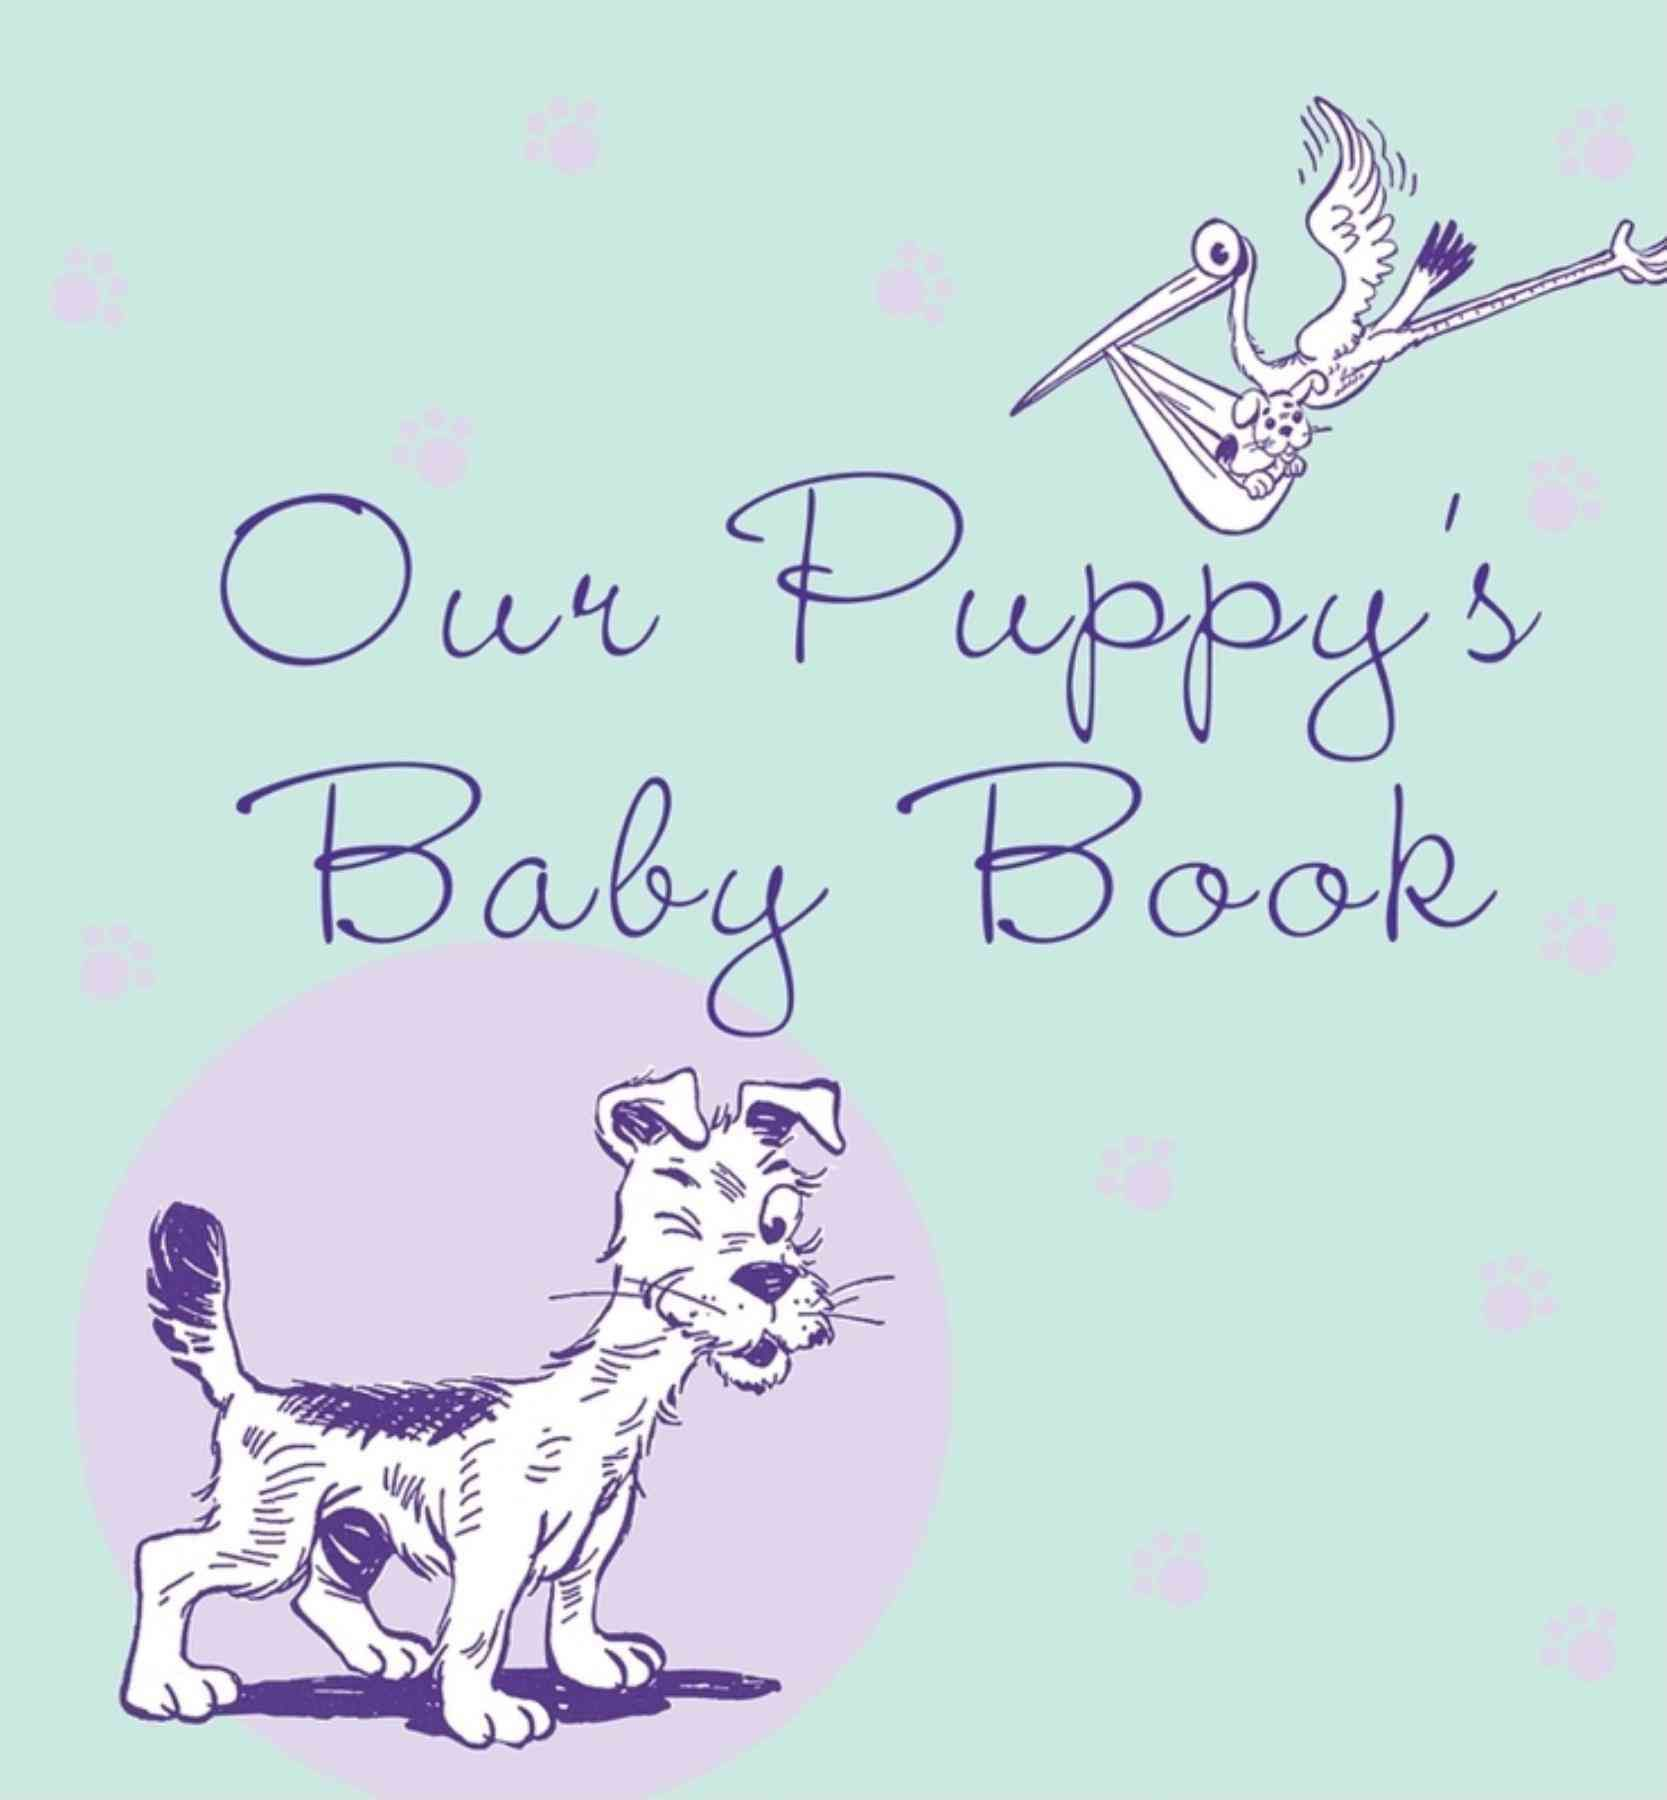 Our Puppy's Baby Book | Baby book, Puppies